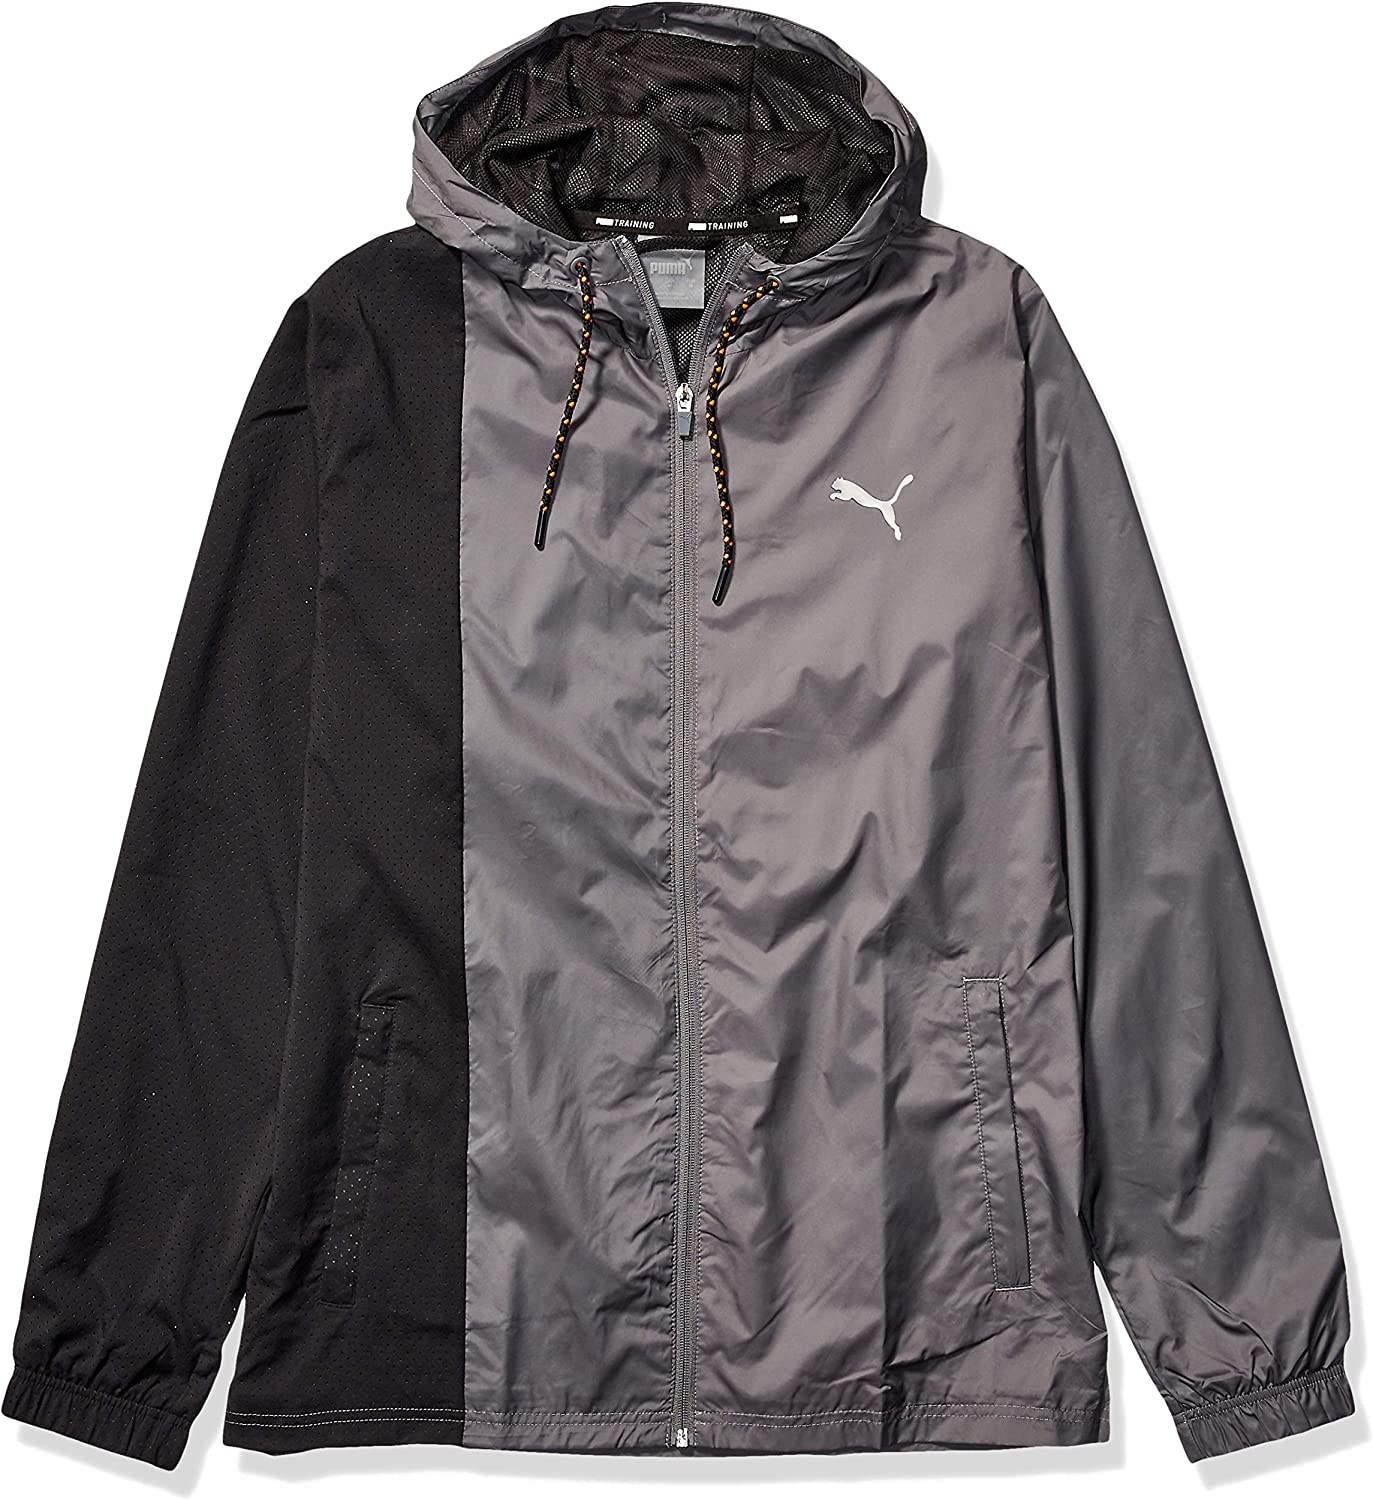 PUMA Mens Collective Woven Jacket